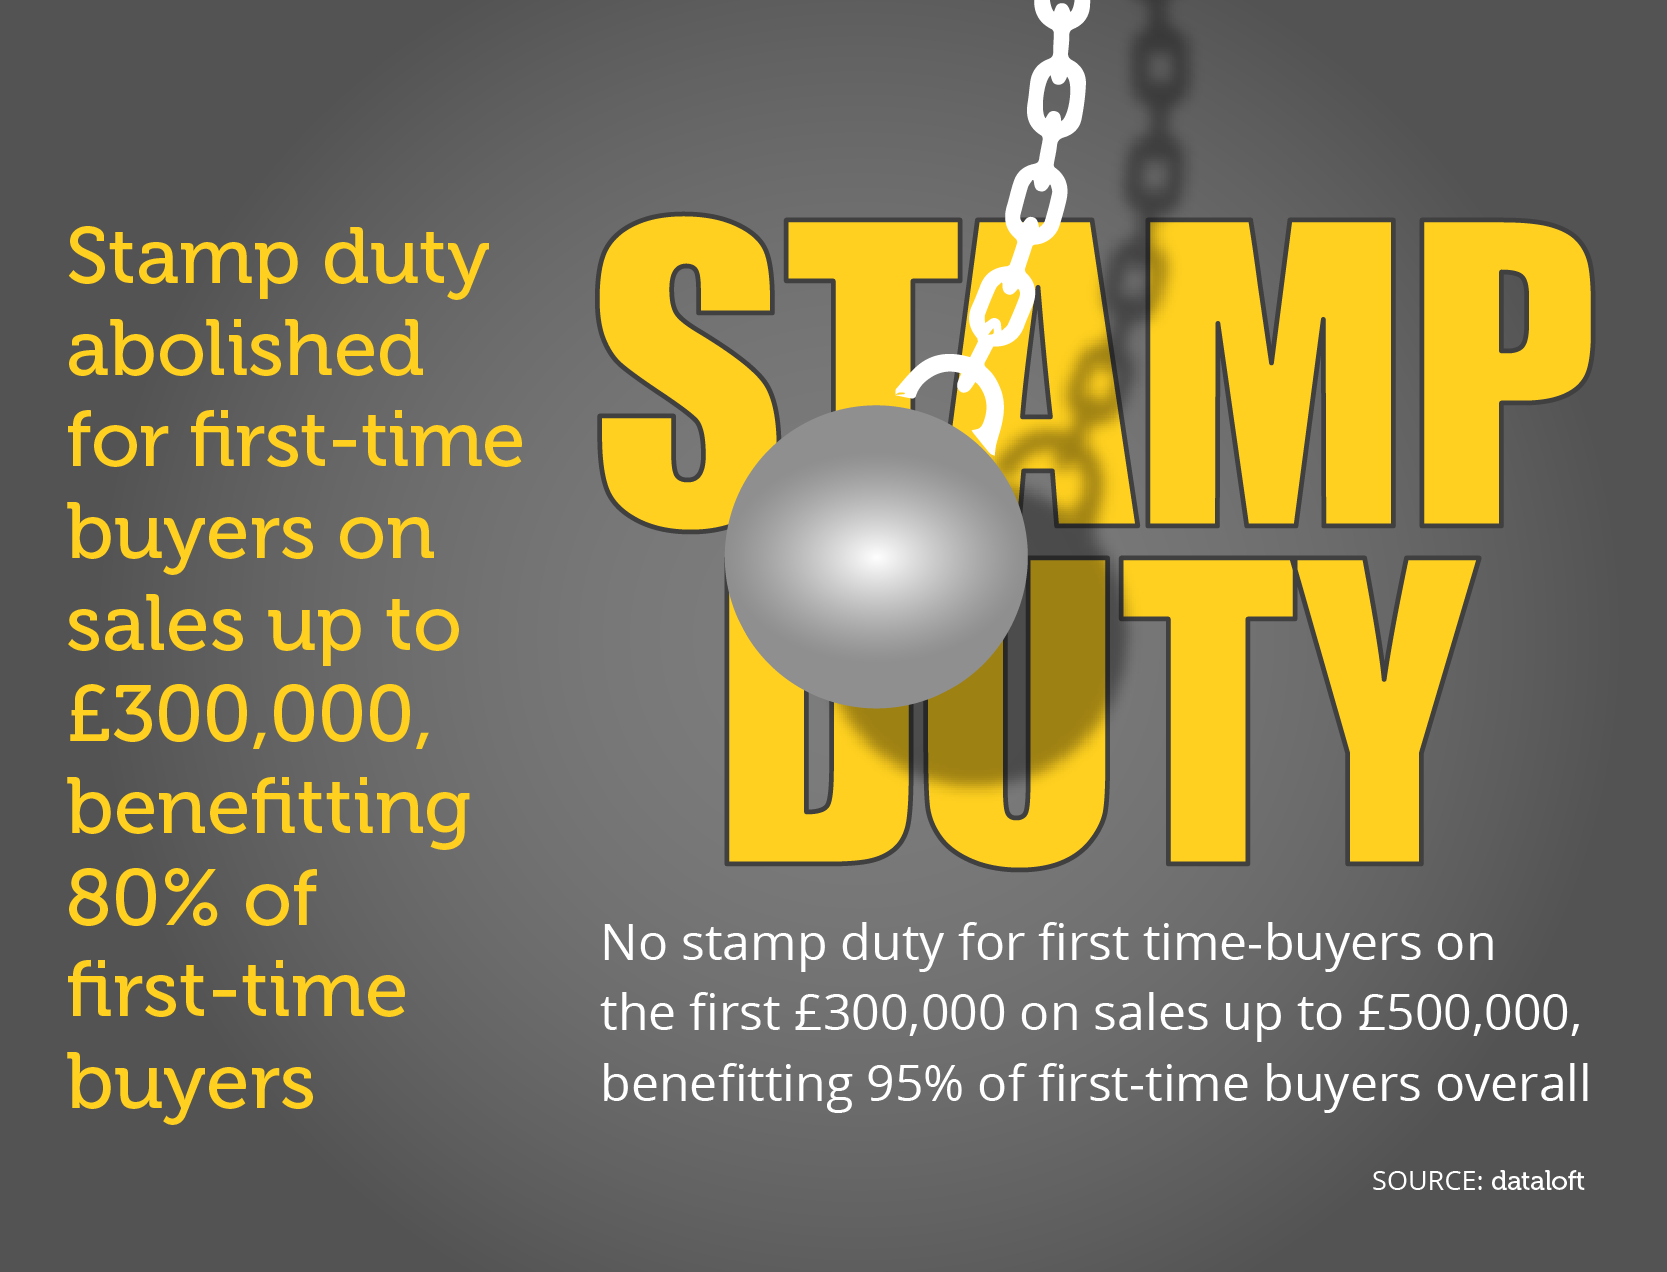 SAVE ON STAMP DUTY